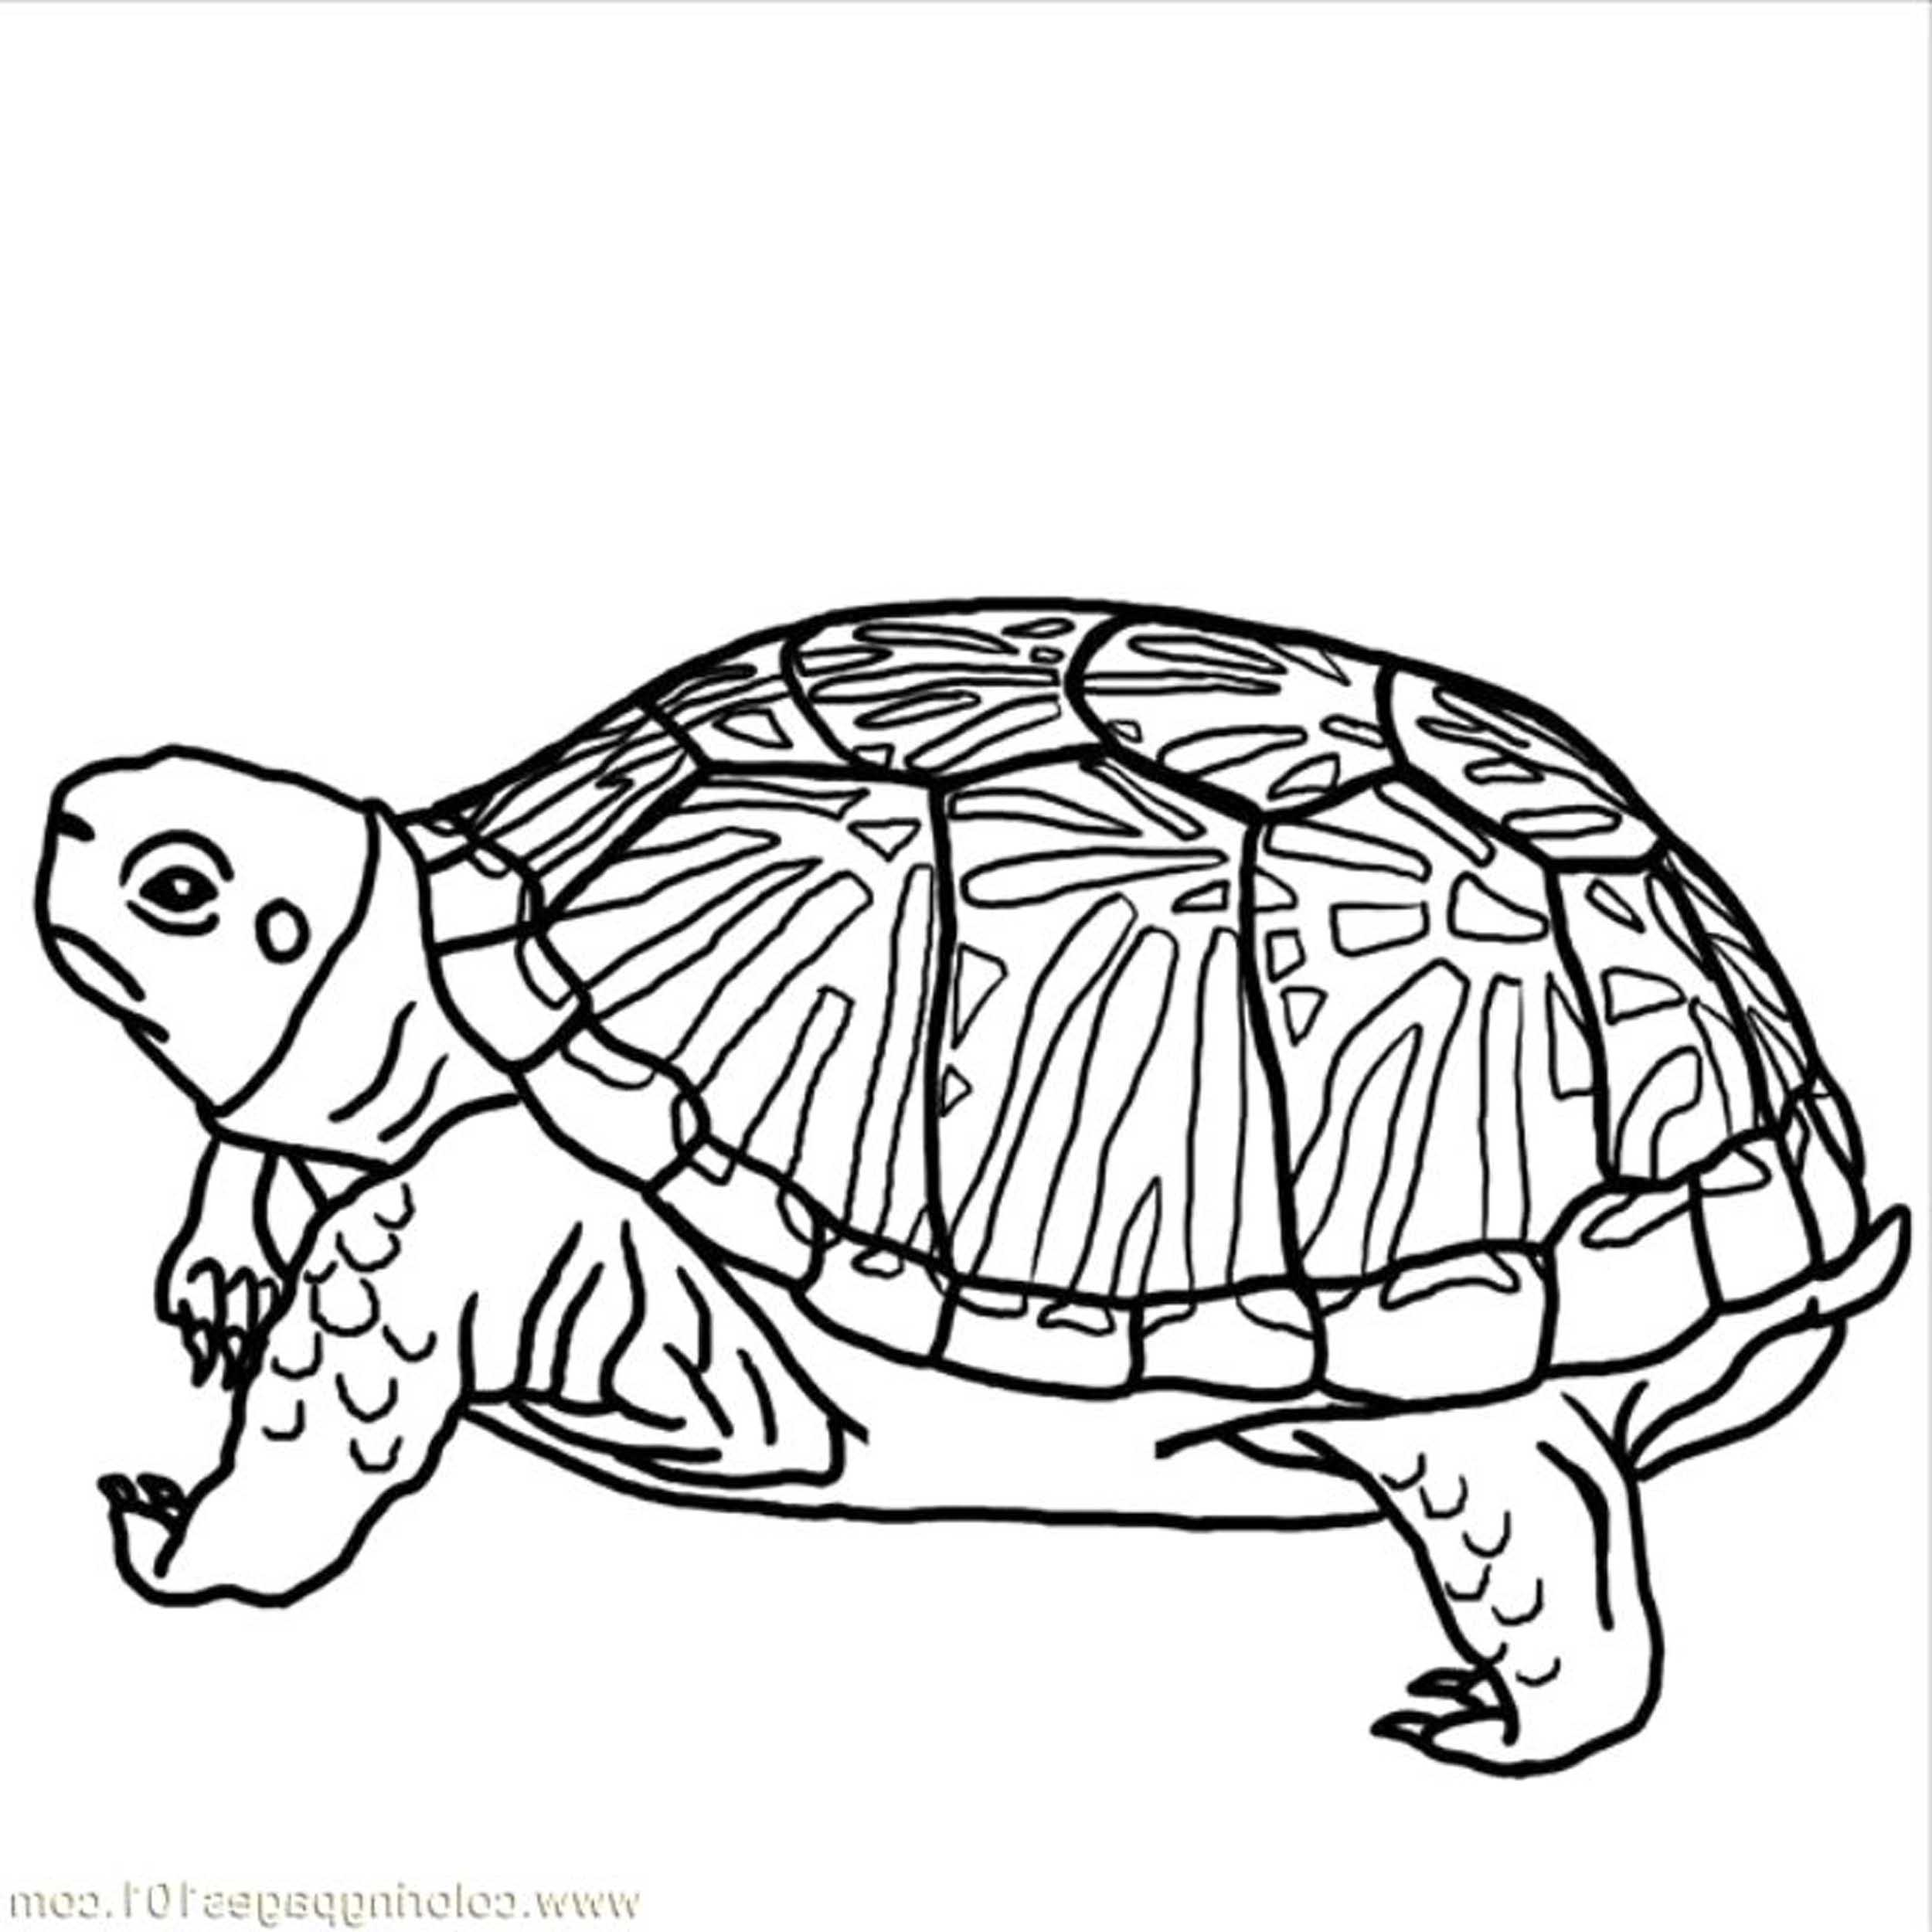 Print & Download - Turtle Coloring Pages as the Educational Tool